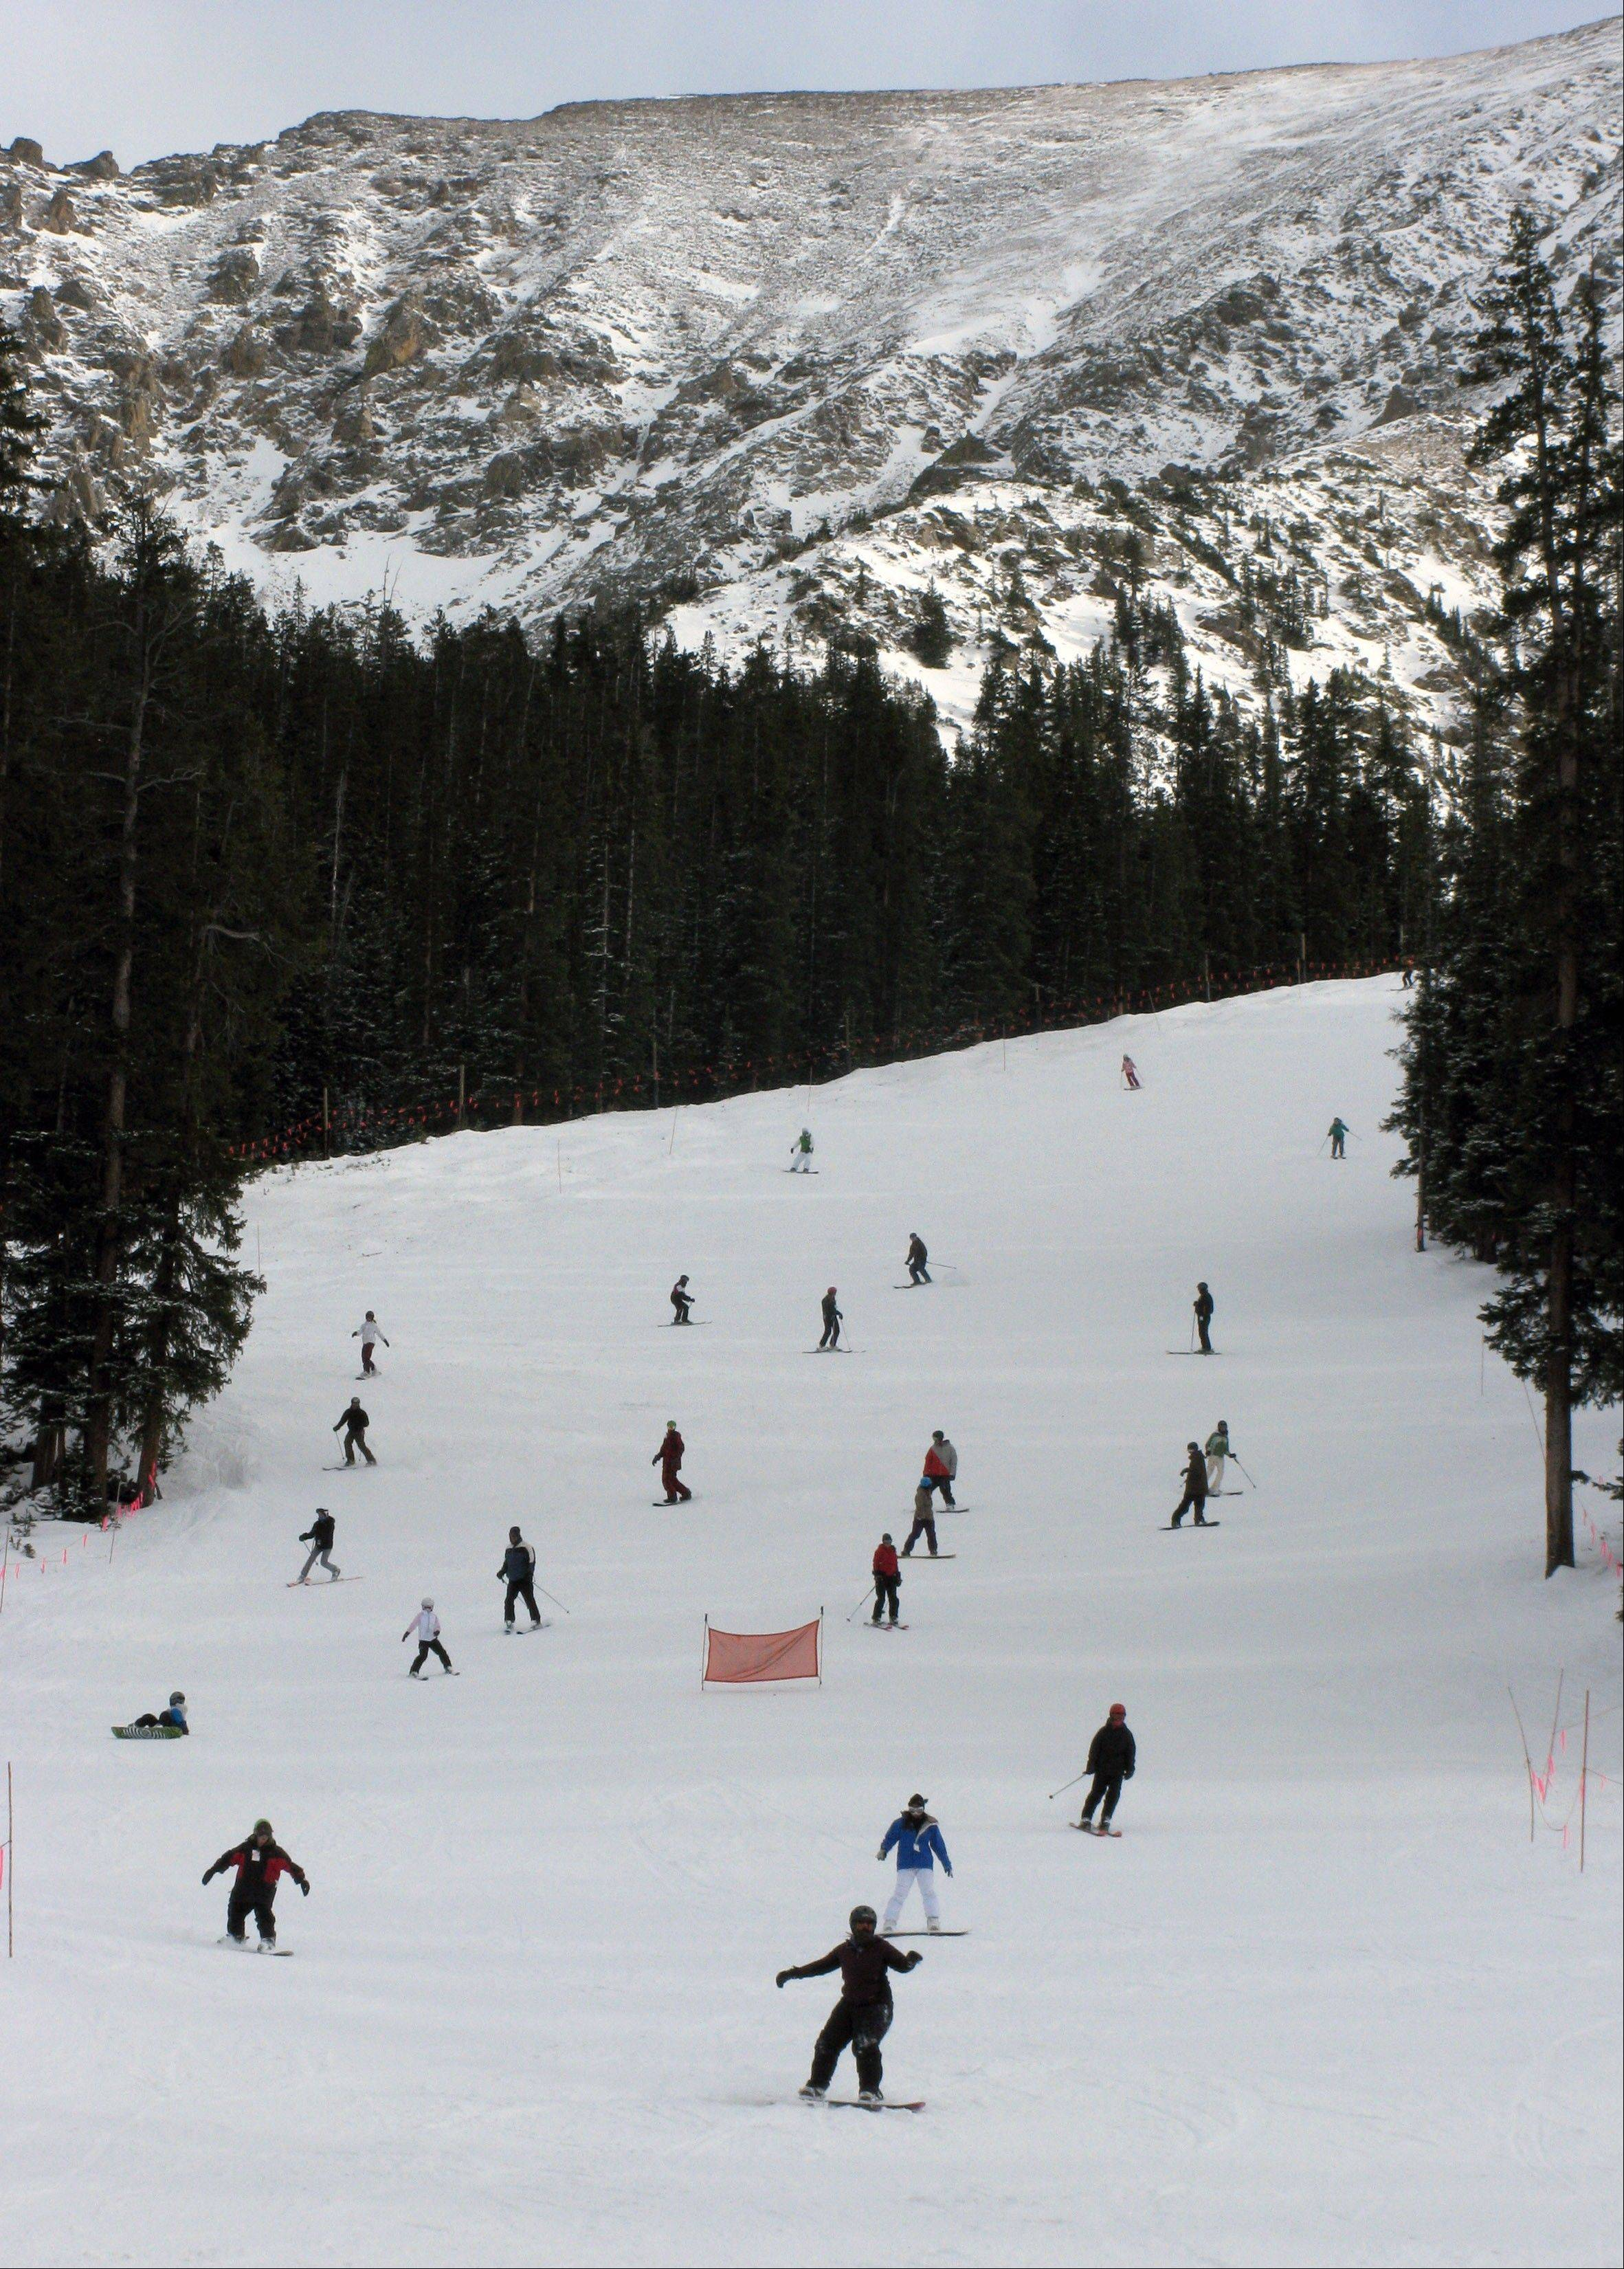 Skiers hit the slopes at Arapahoe Basin Ski Area near Dillon, Colo. Colorado's resorts and hotels are hoping for a better season than last year.